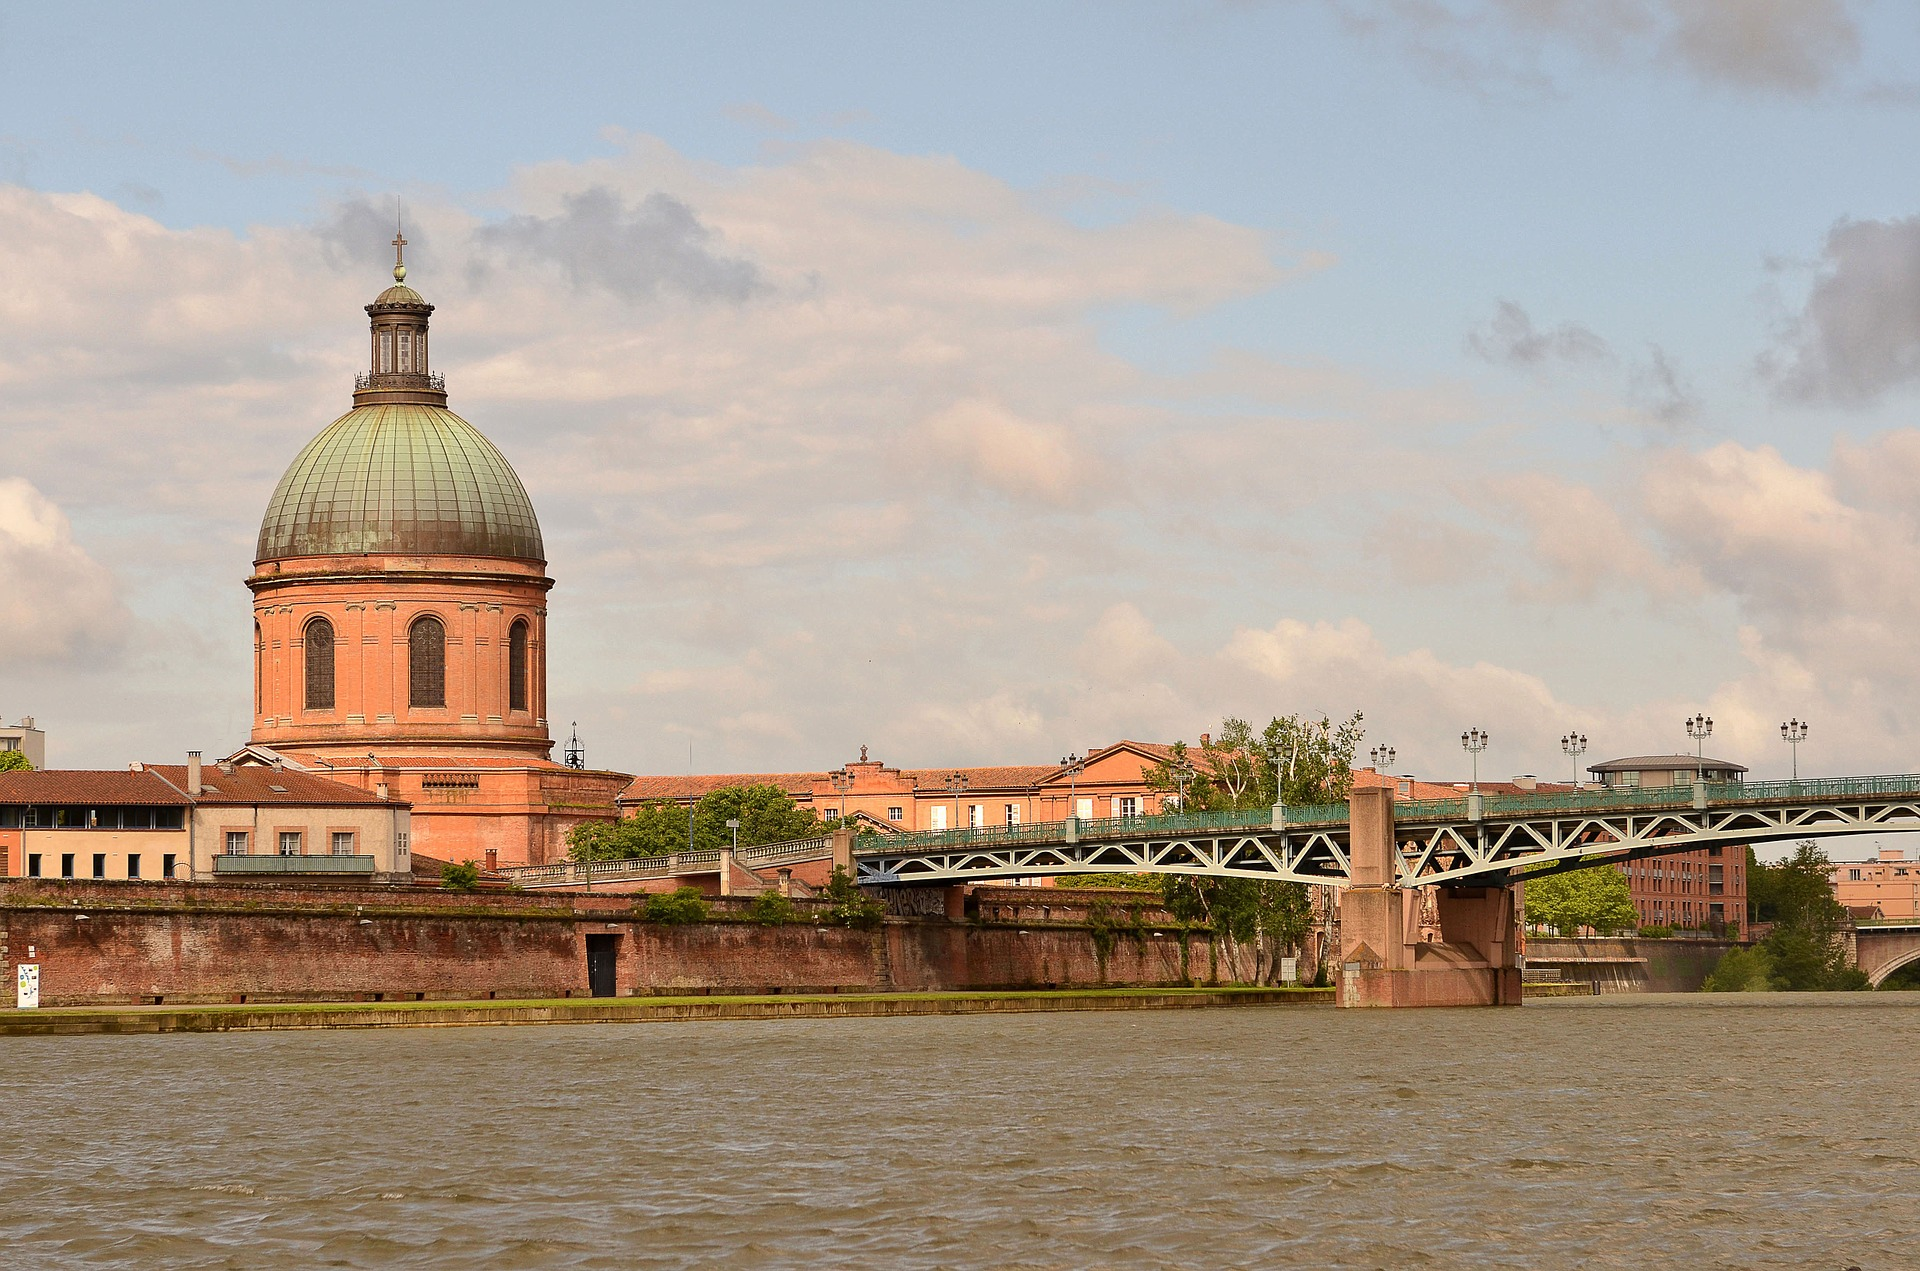 toulouse-1041320_1920